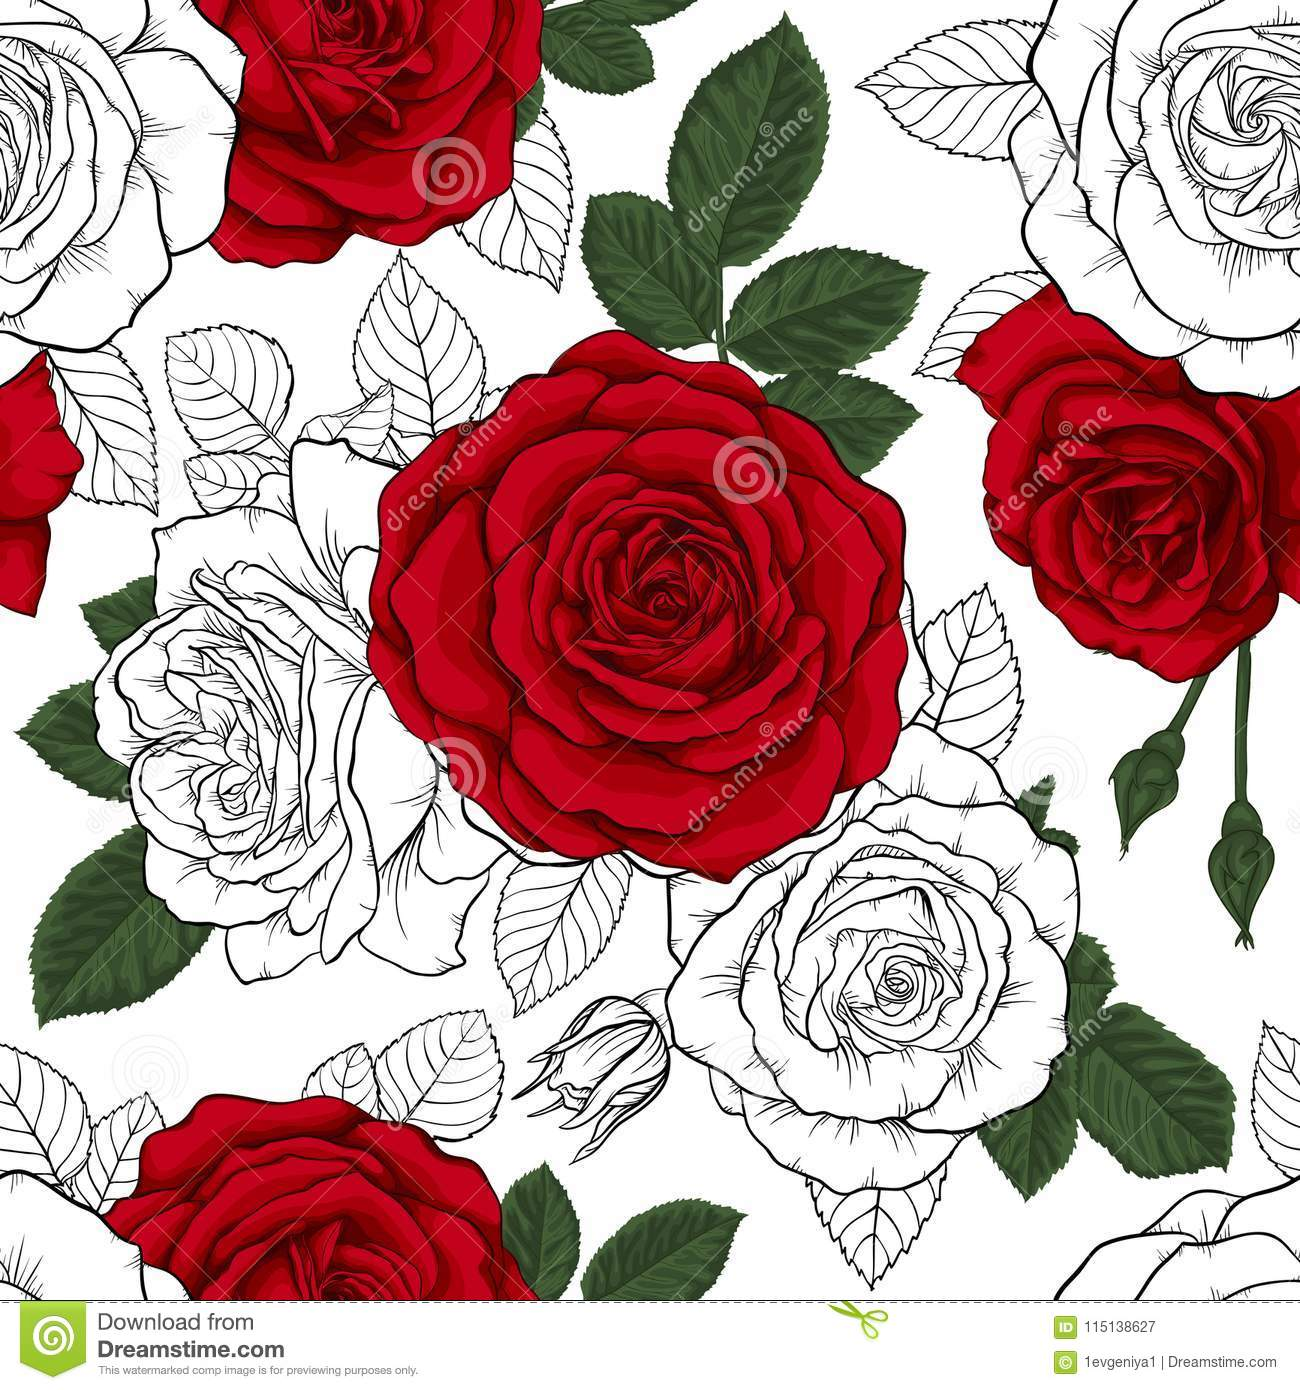 Beautiful Vintage Seamless Pattern With Red Black And White Roses